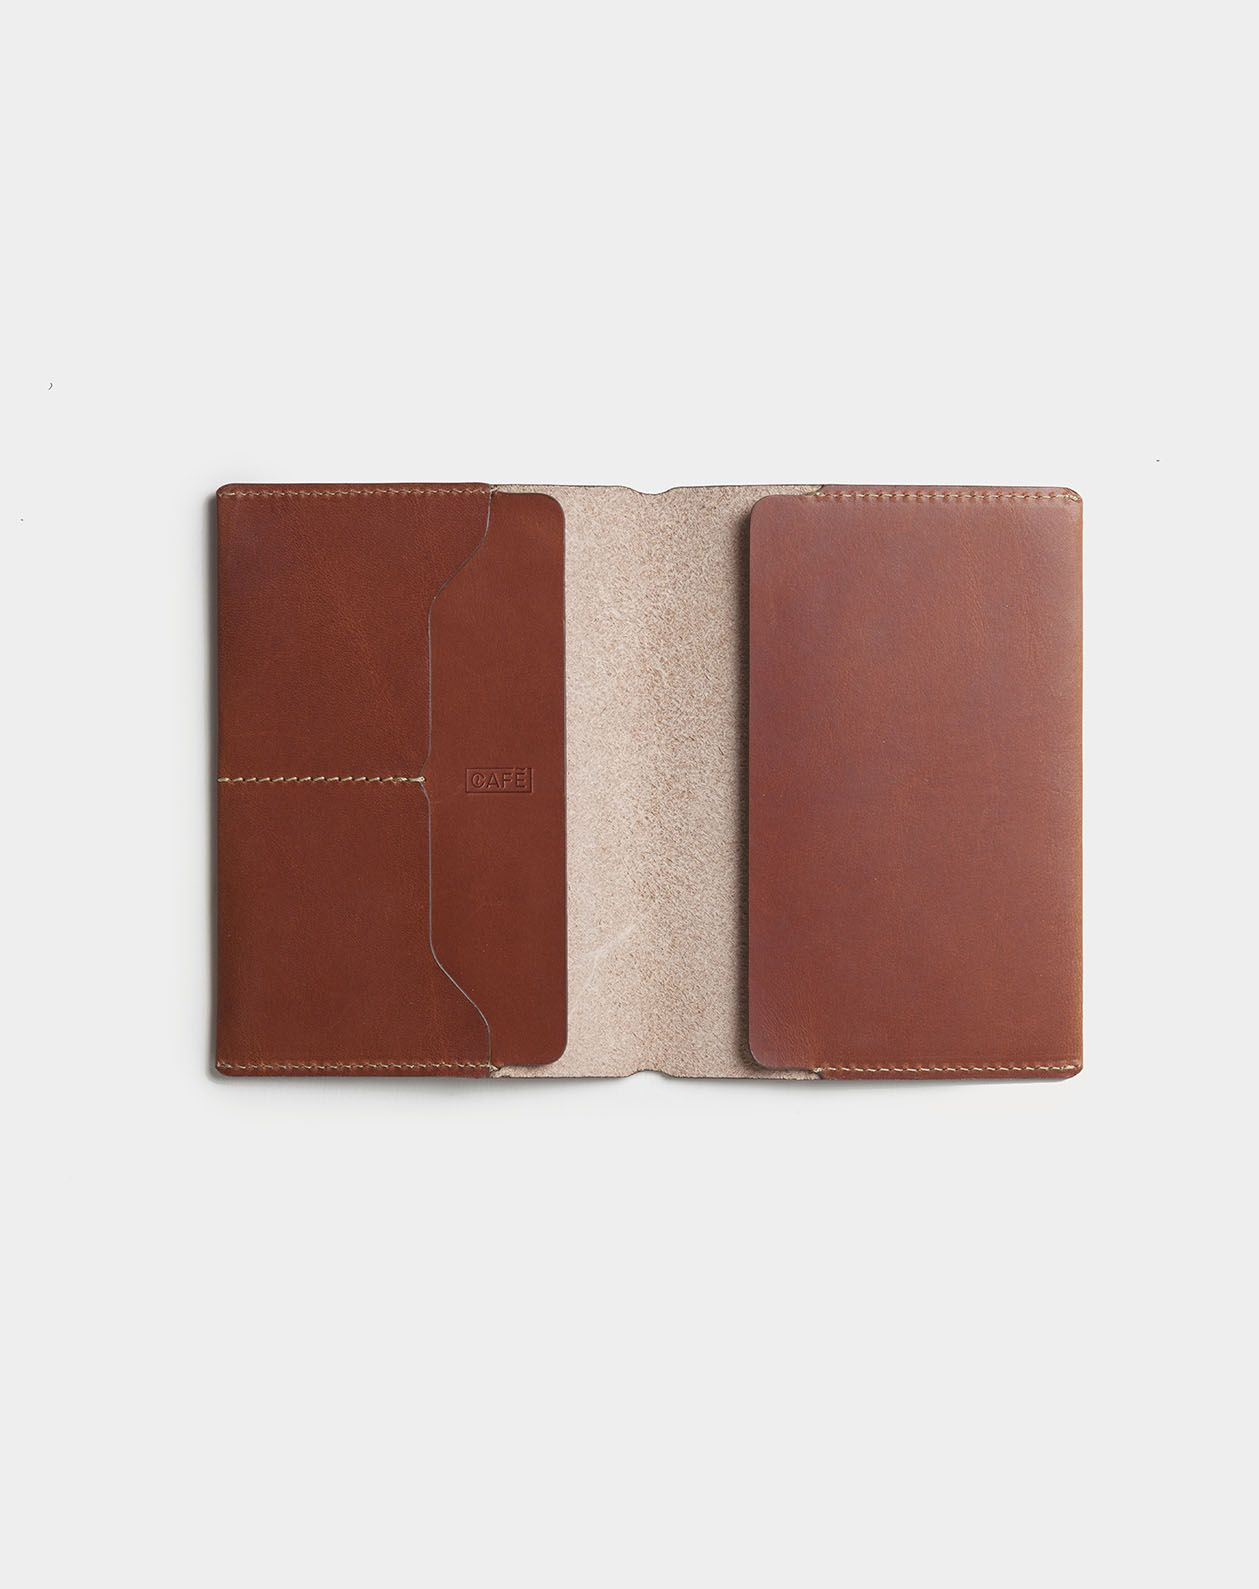 Leather Travel Wallet Brown Handmade In Spain Cafe Leather V